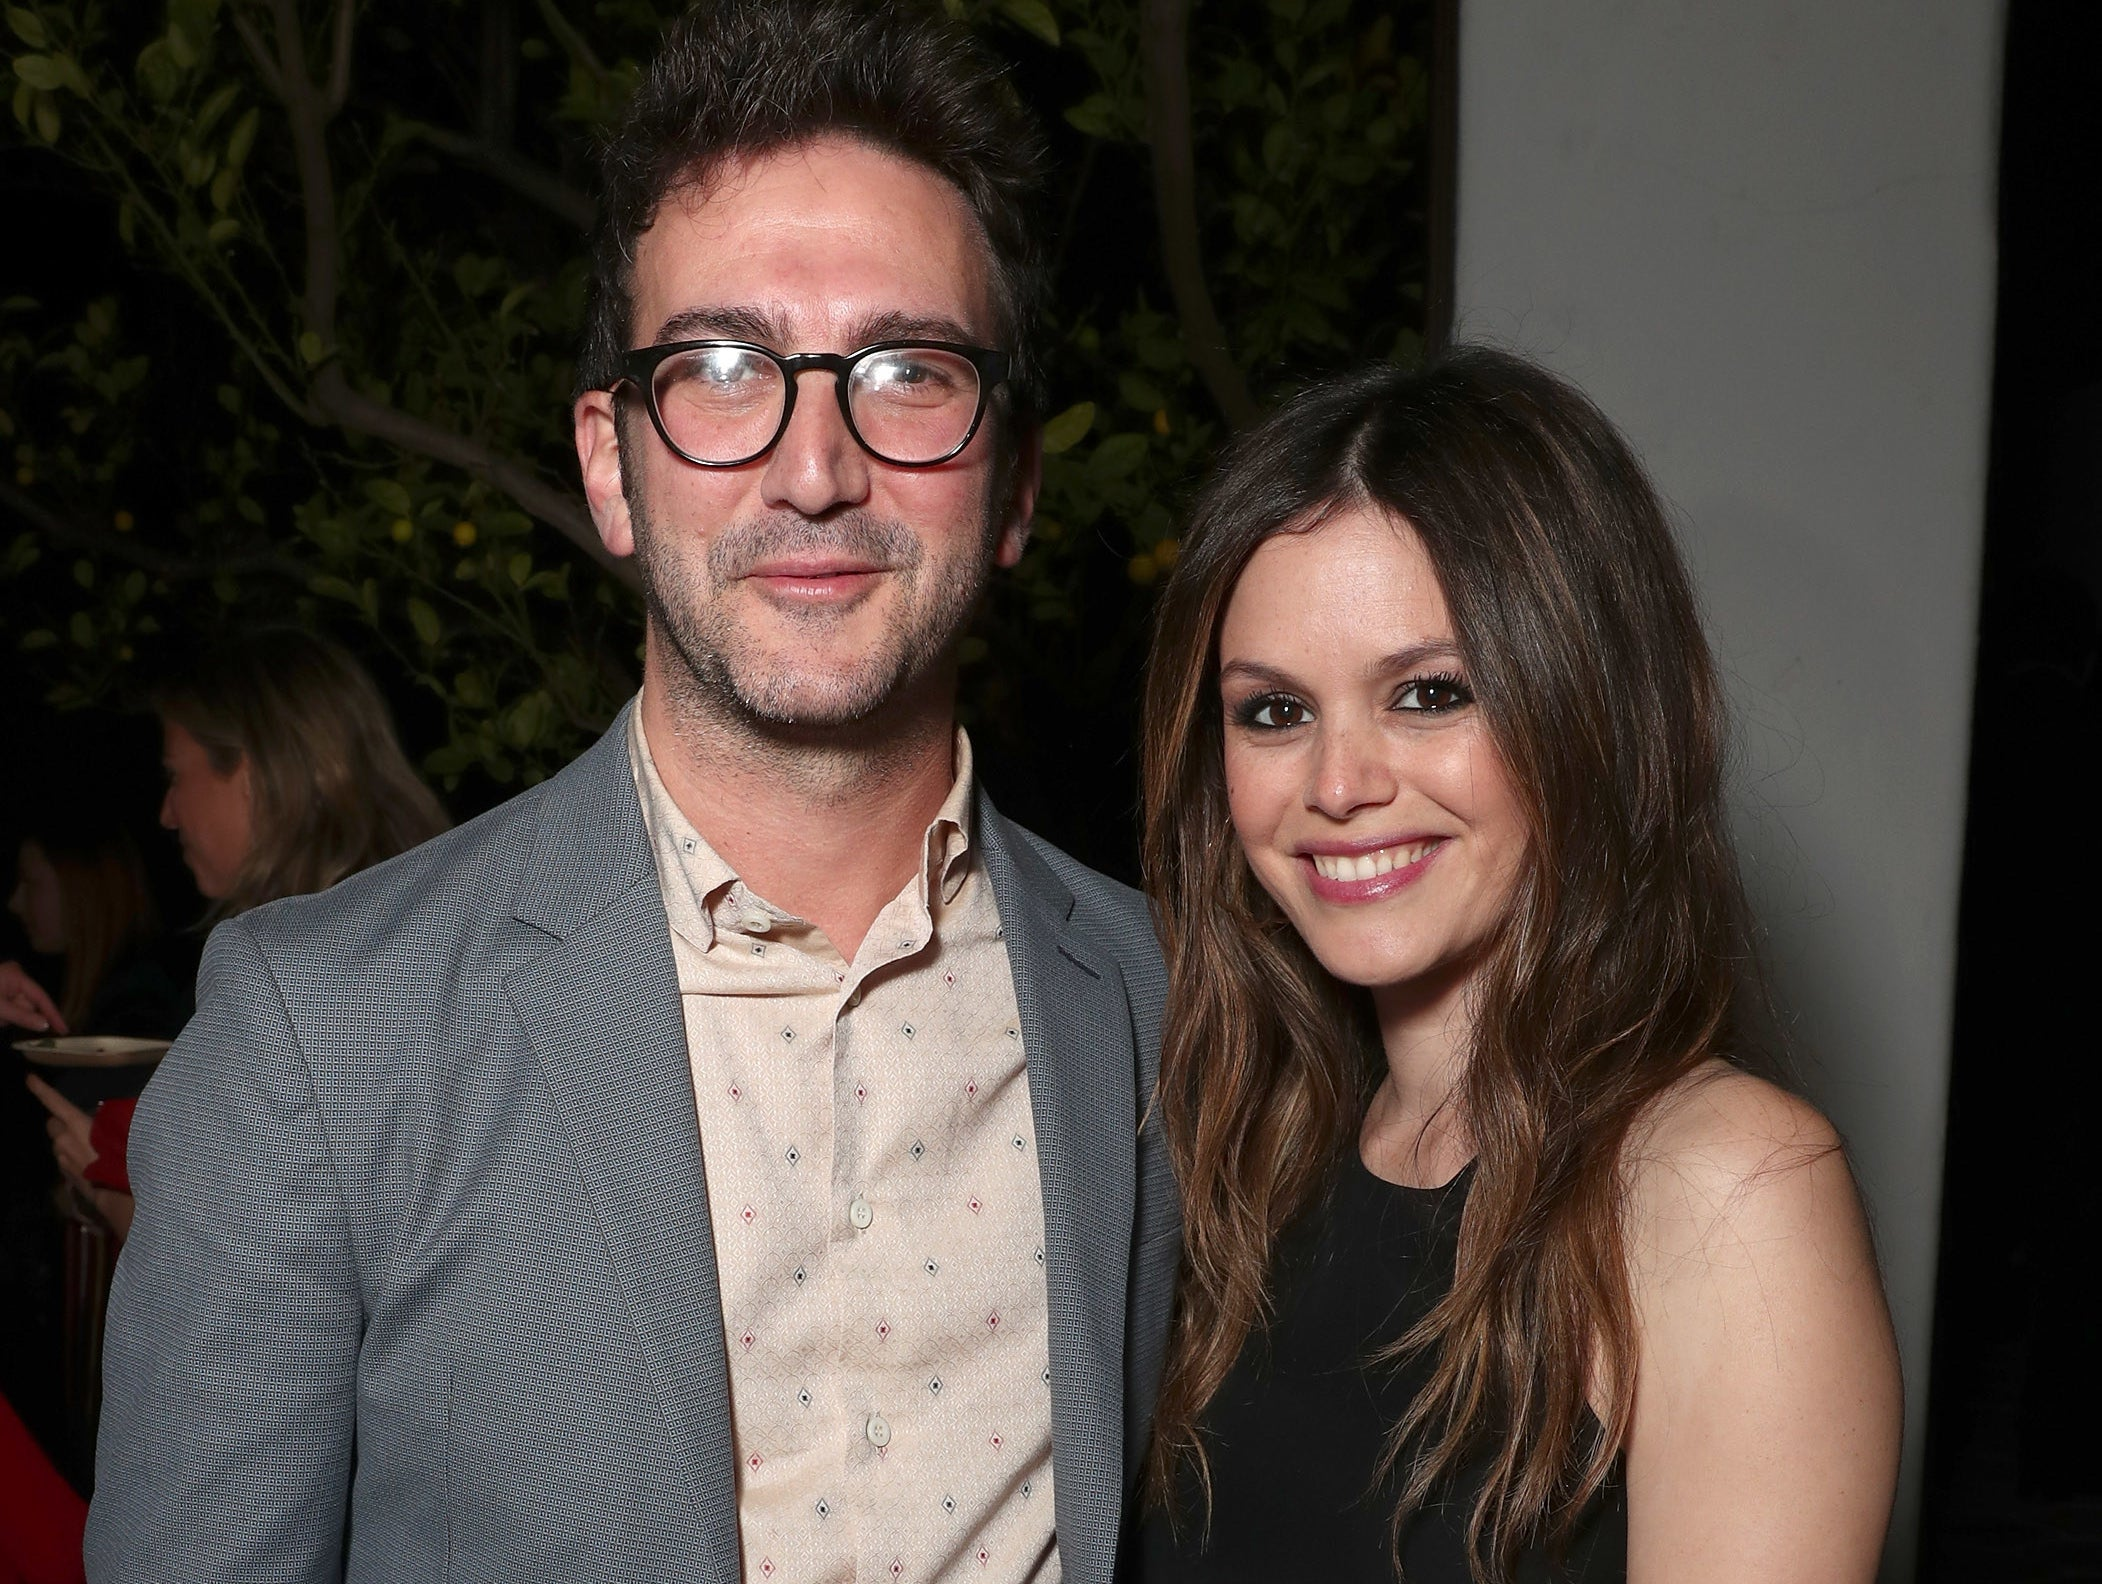 Rachel poses with Josh at an event